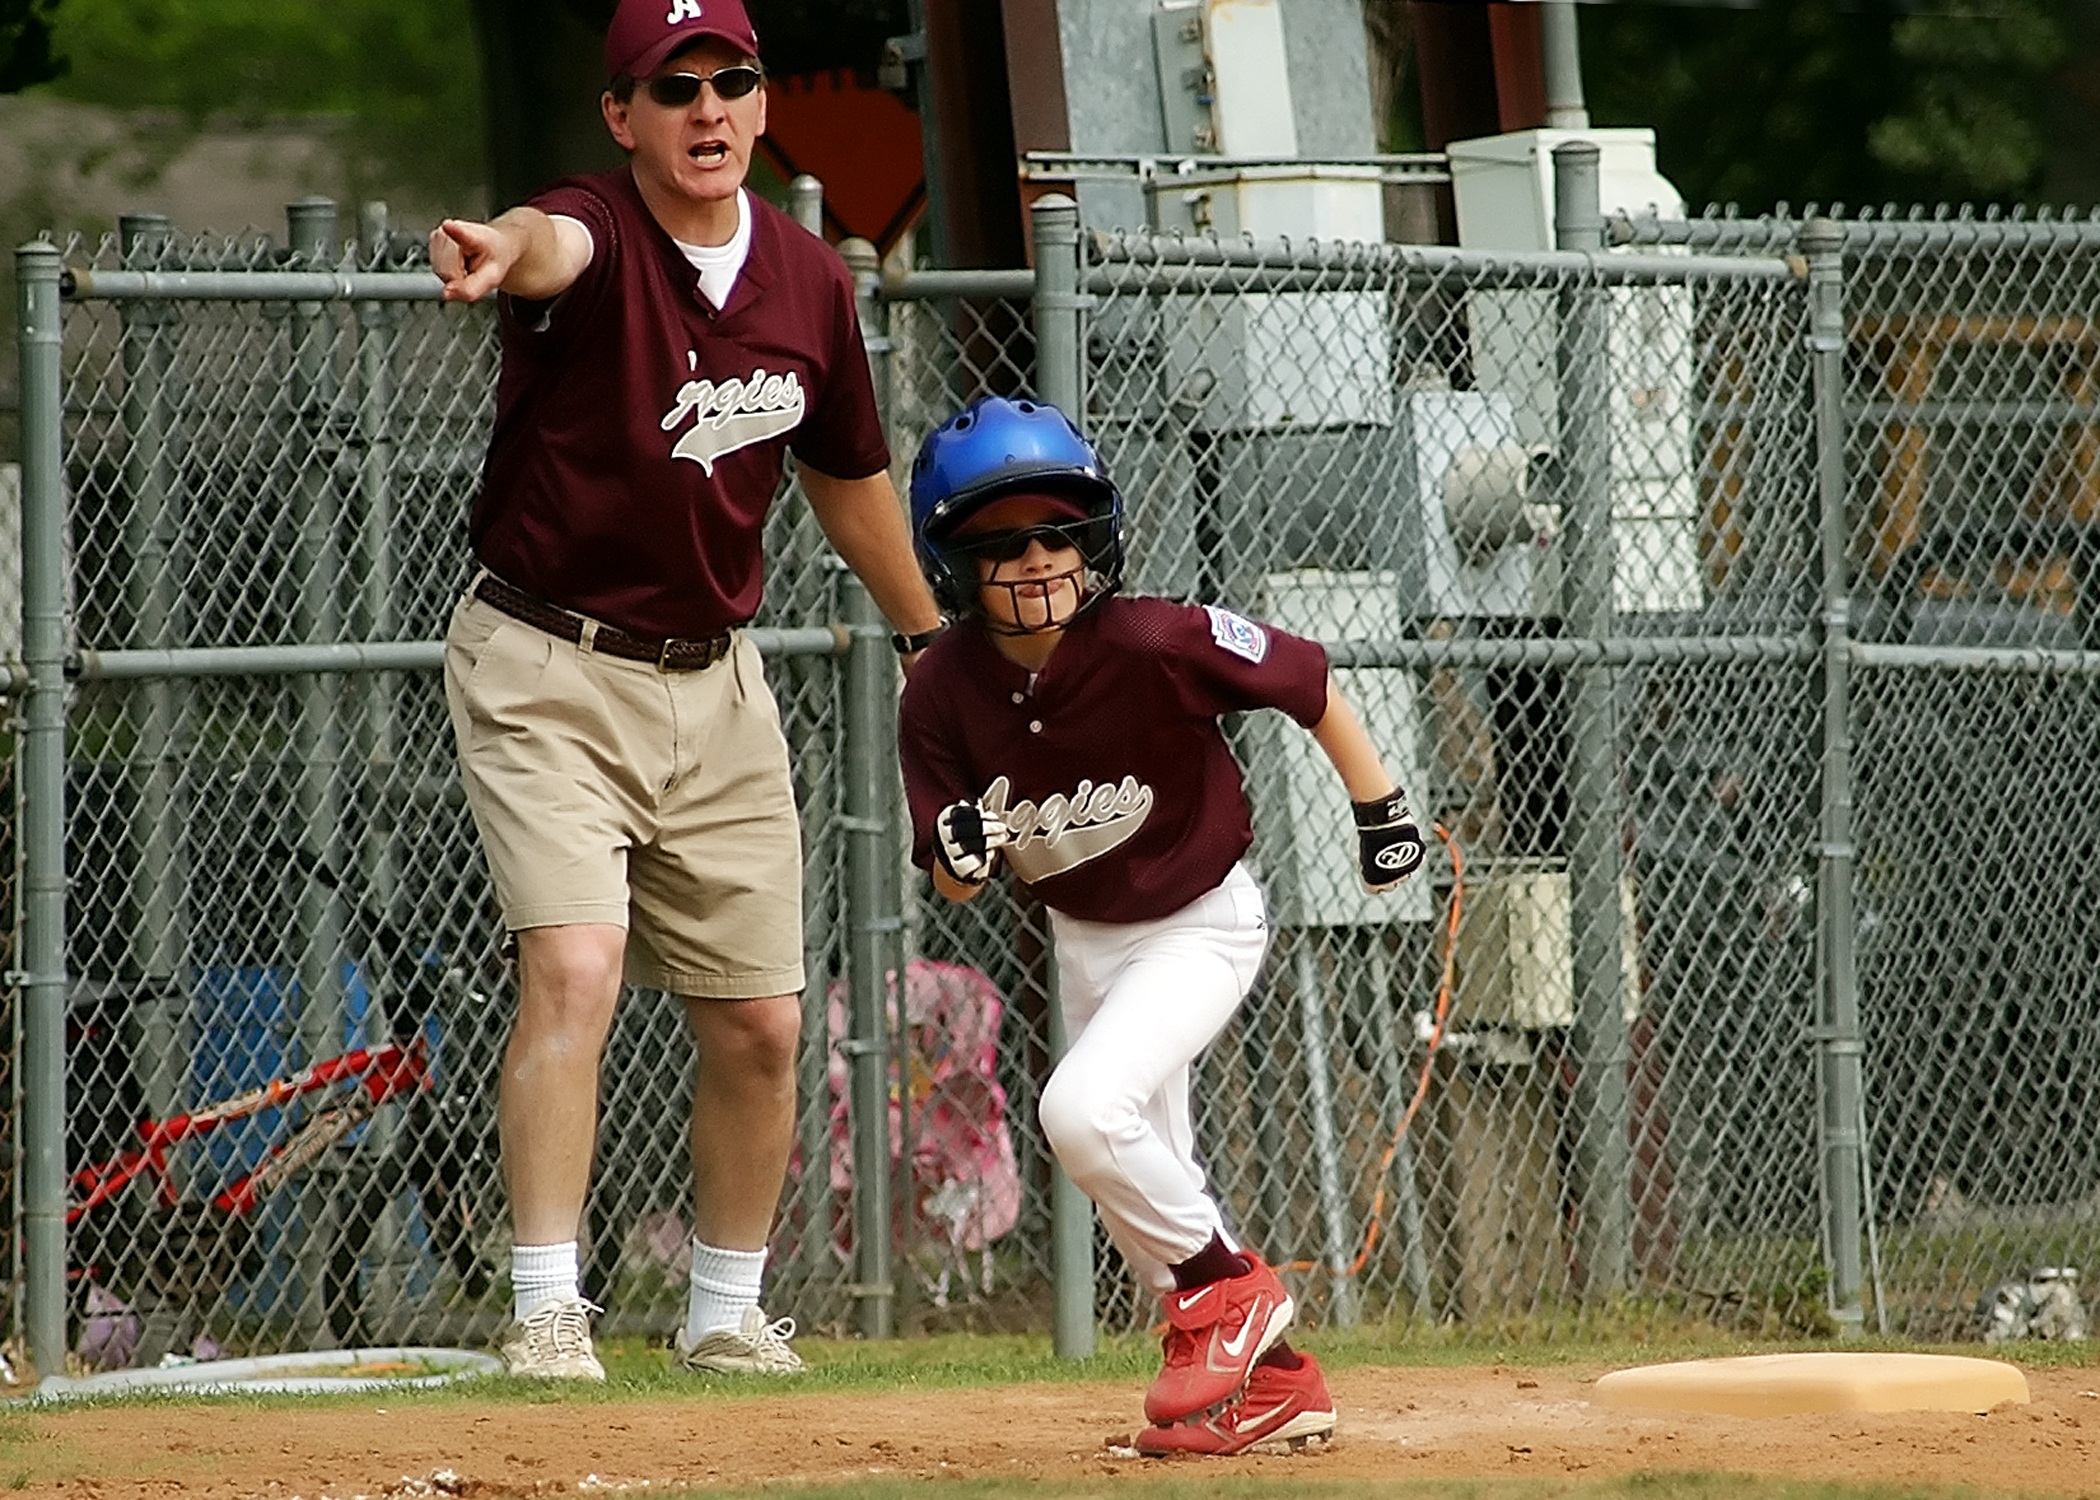 baseball-runner-coach-little-league-163308.jpeg